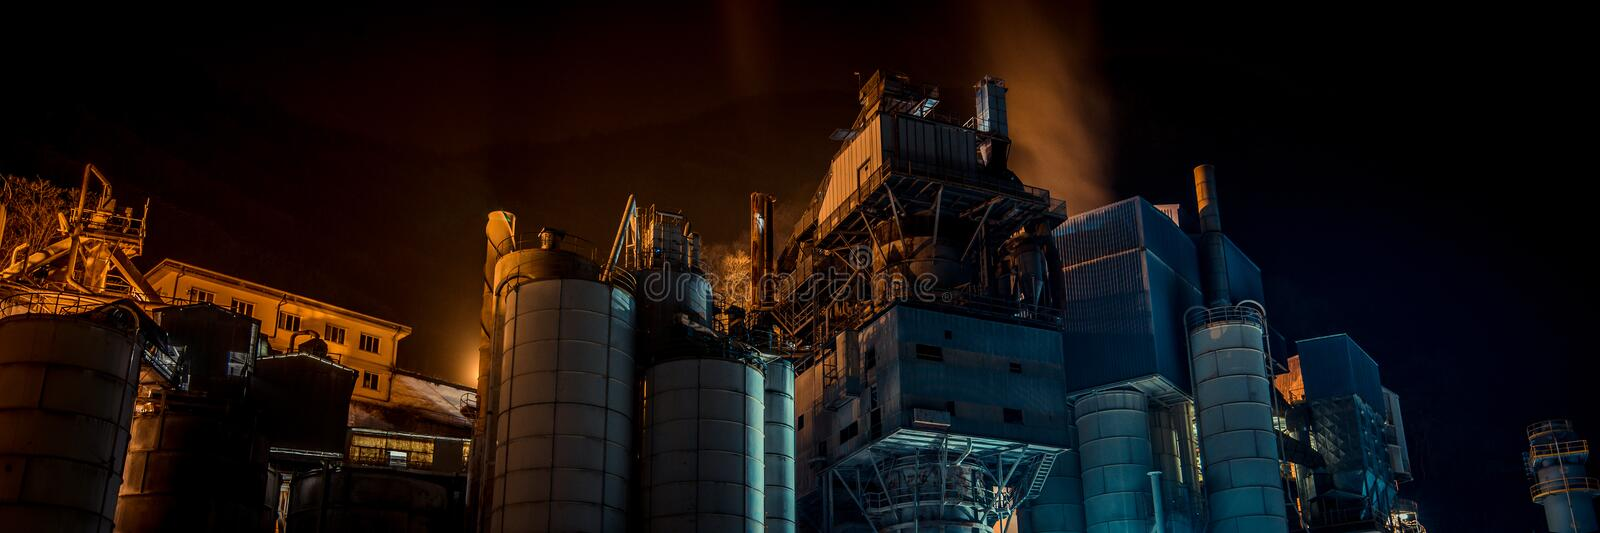 Cement plant in the night royalty free stock photography